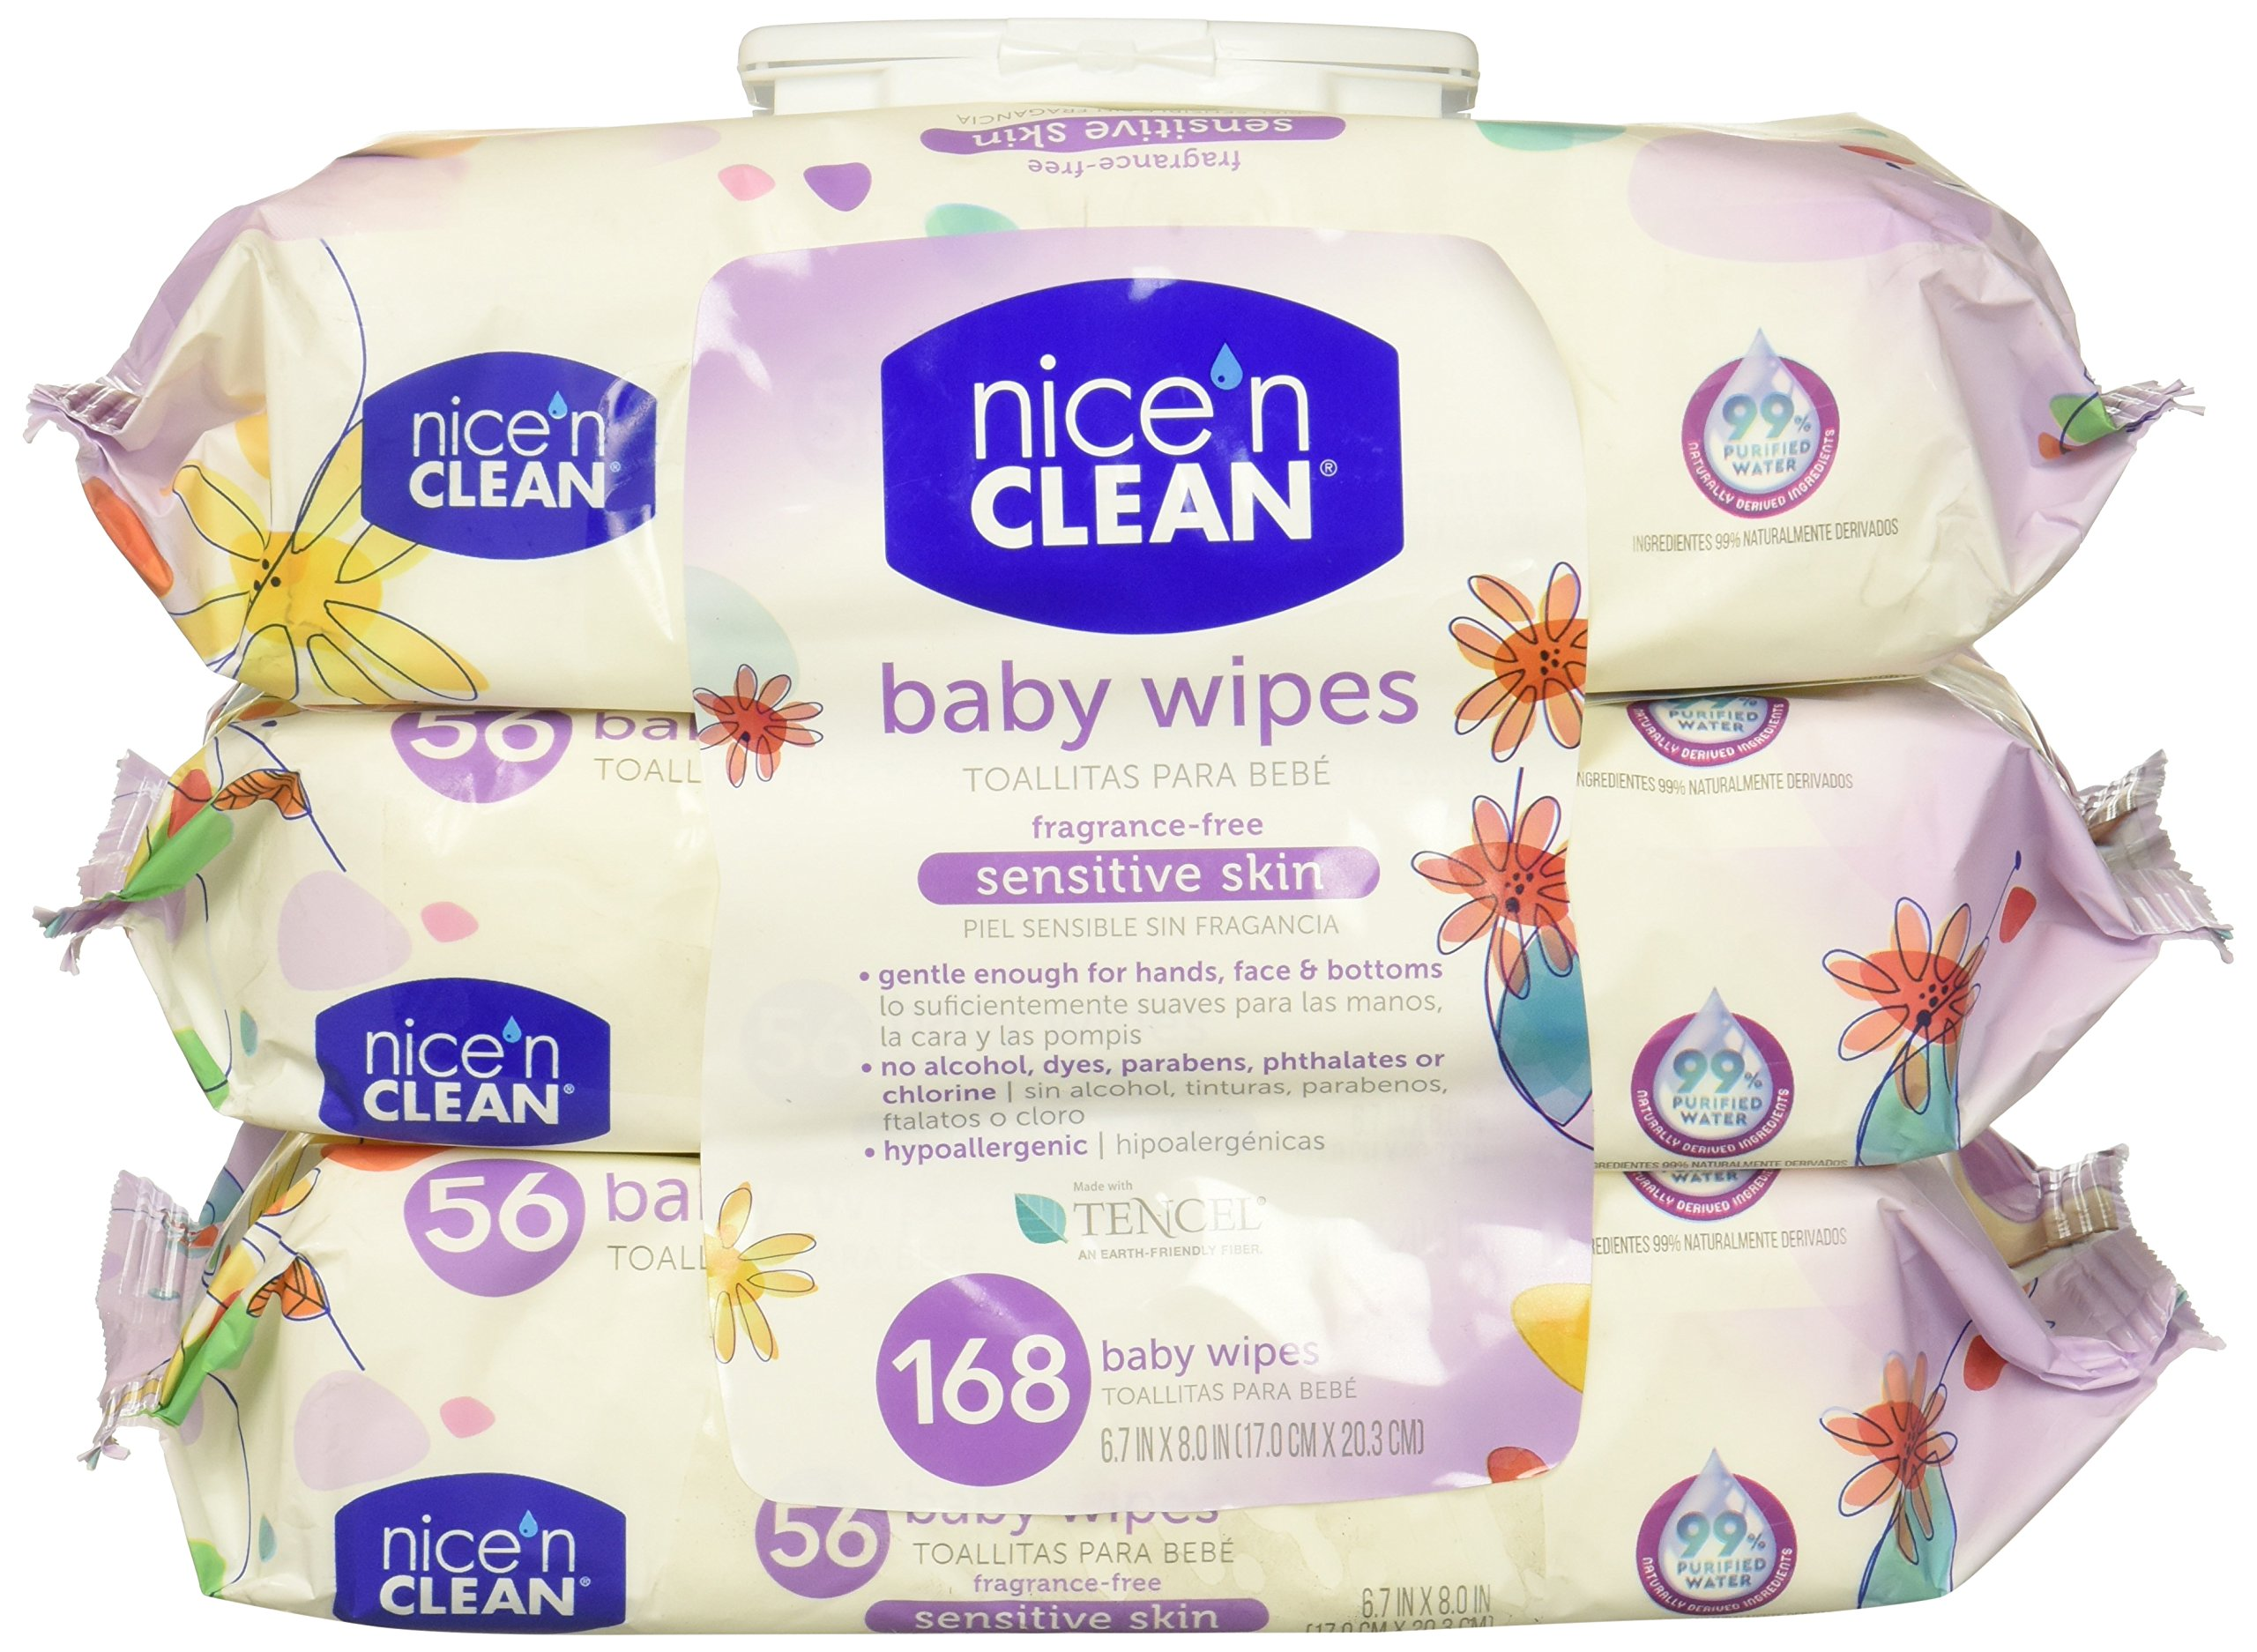 Nice 'n Clean Unscented Baby Wipes (168 Total Wipes) | Ideal for Sensitive Skin | Hypoallergenic, Alcohol-Free, Paraben-Free Wet Wipes | Infused w/Aloe & Vitamin E